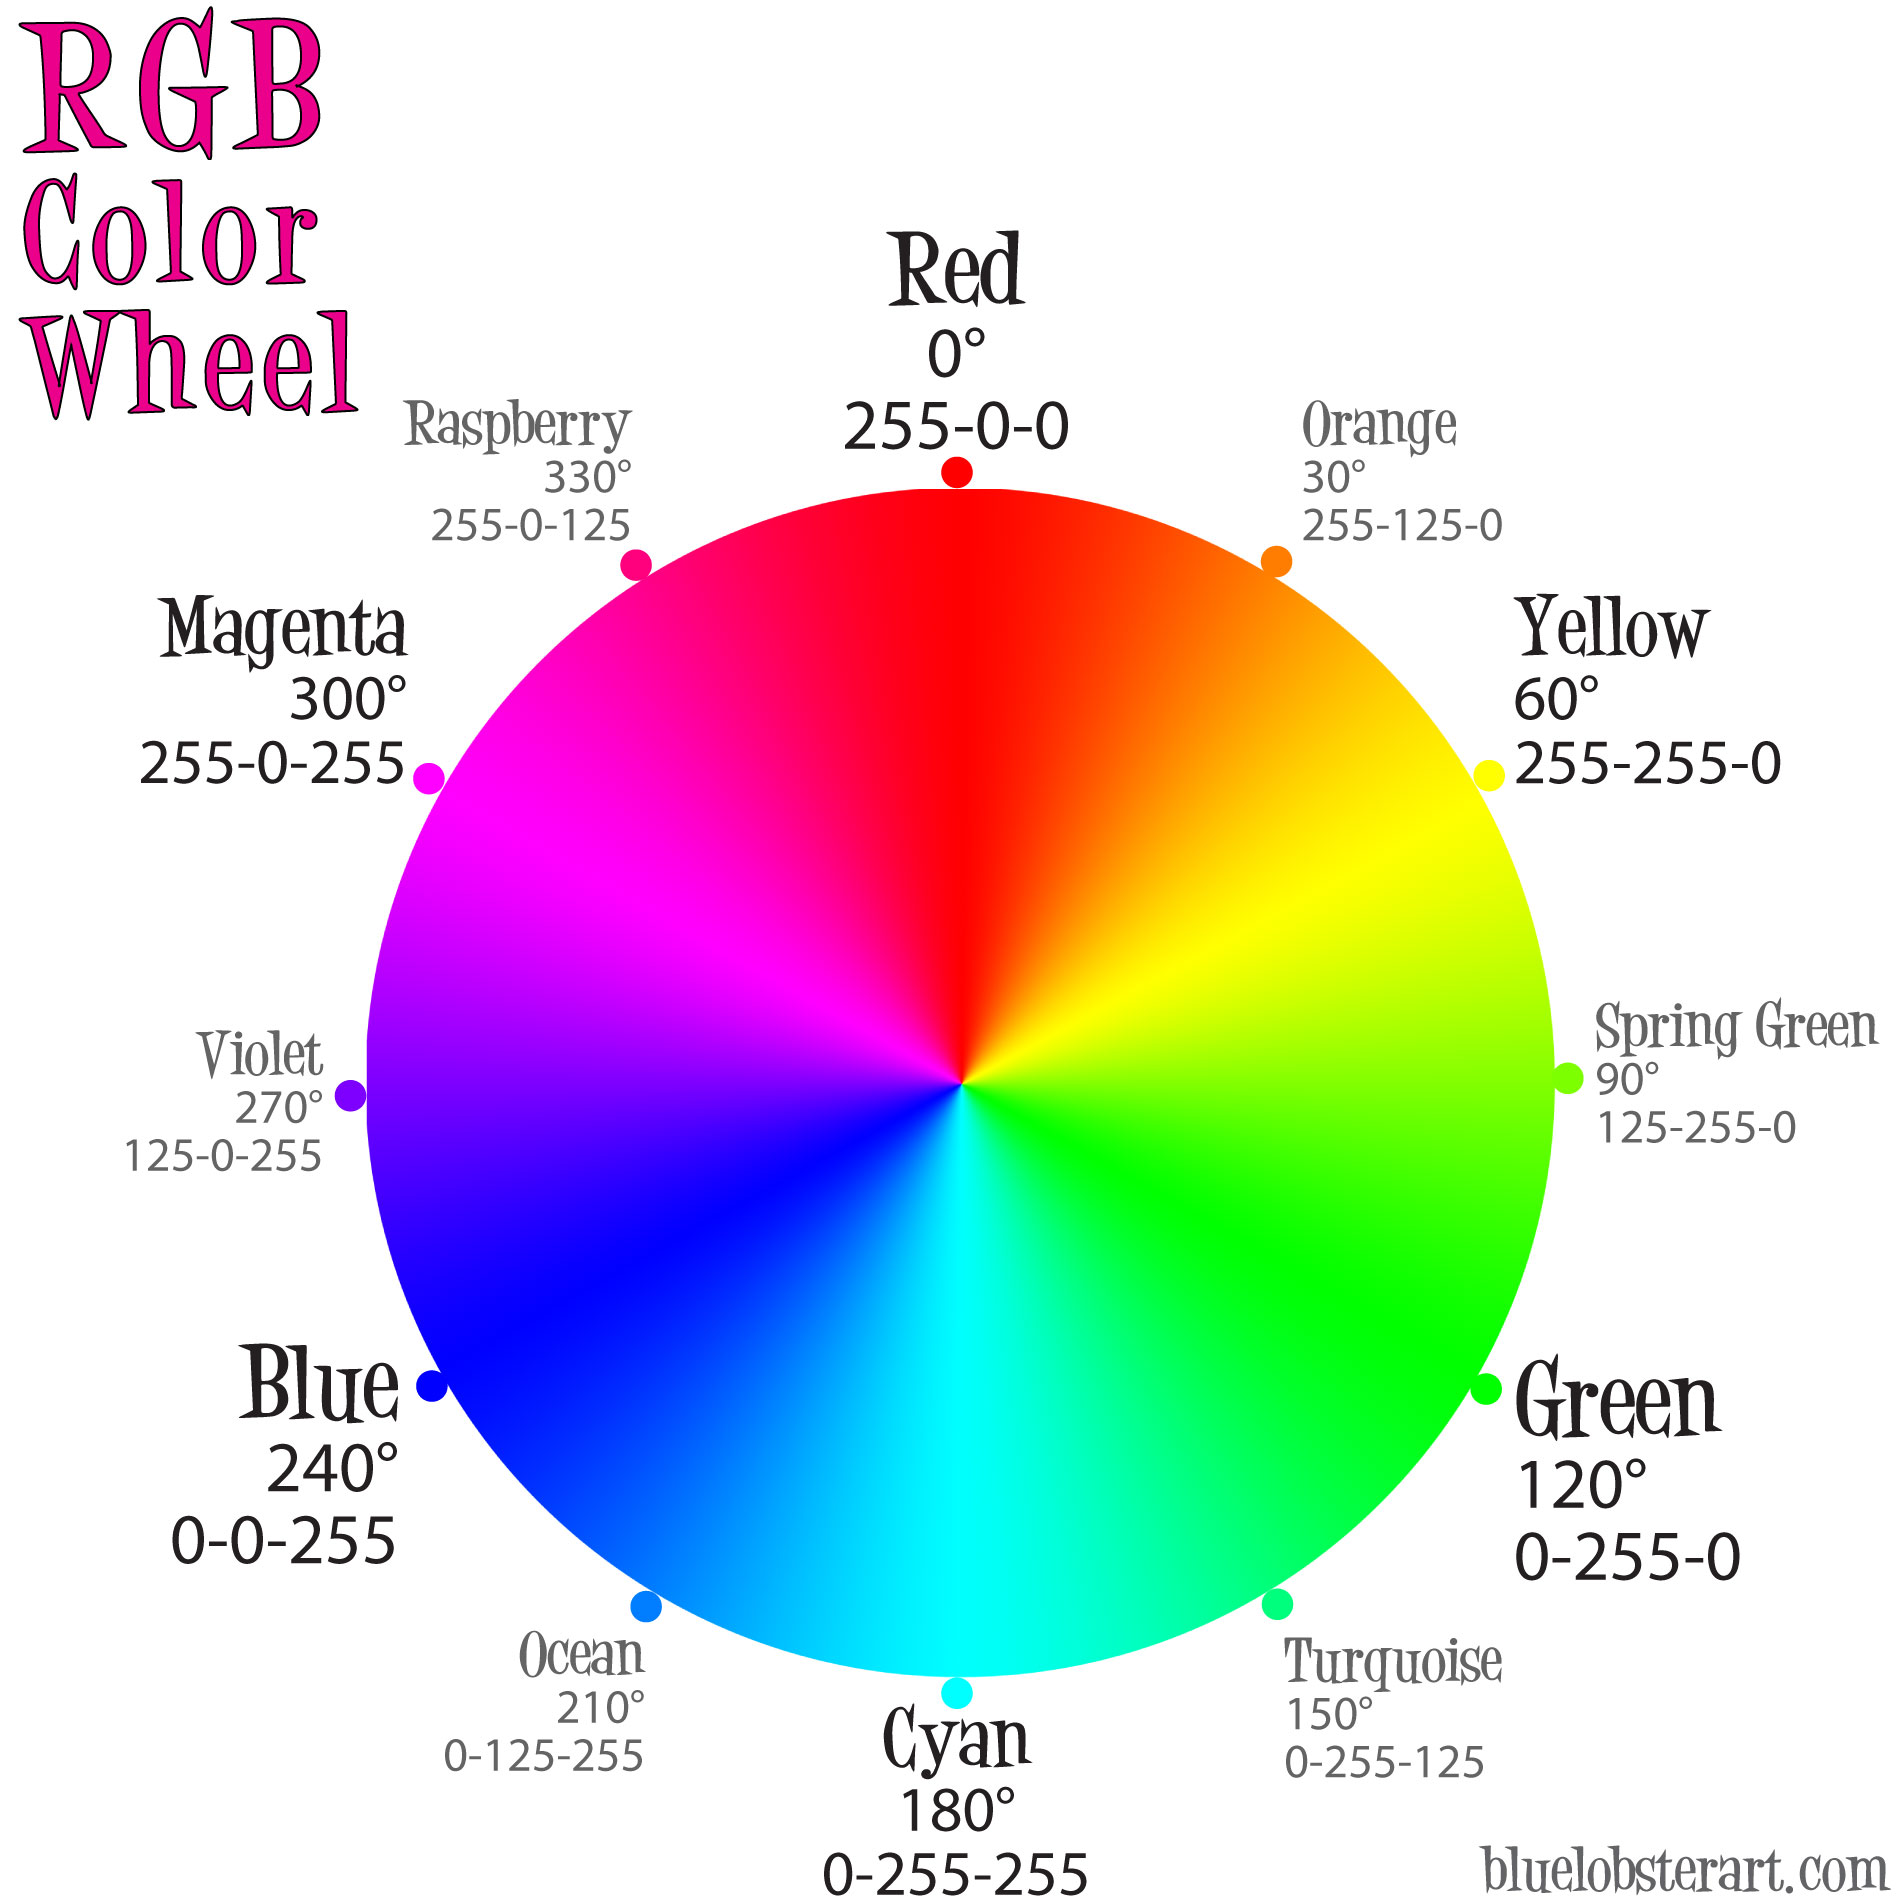 The RGB Color Wheel